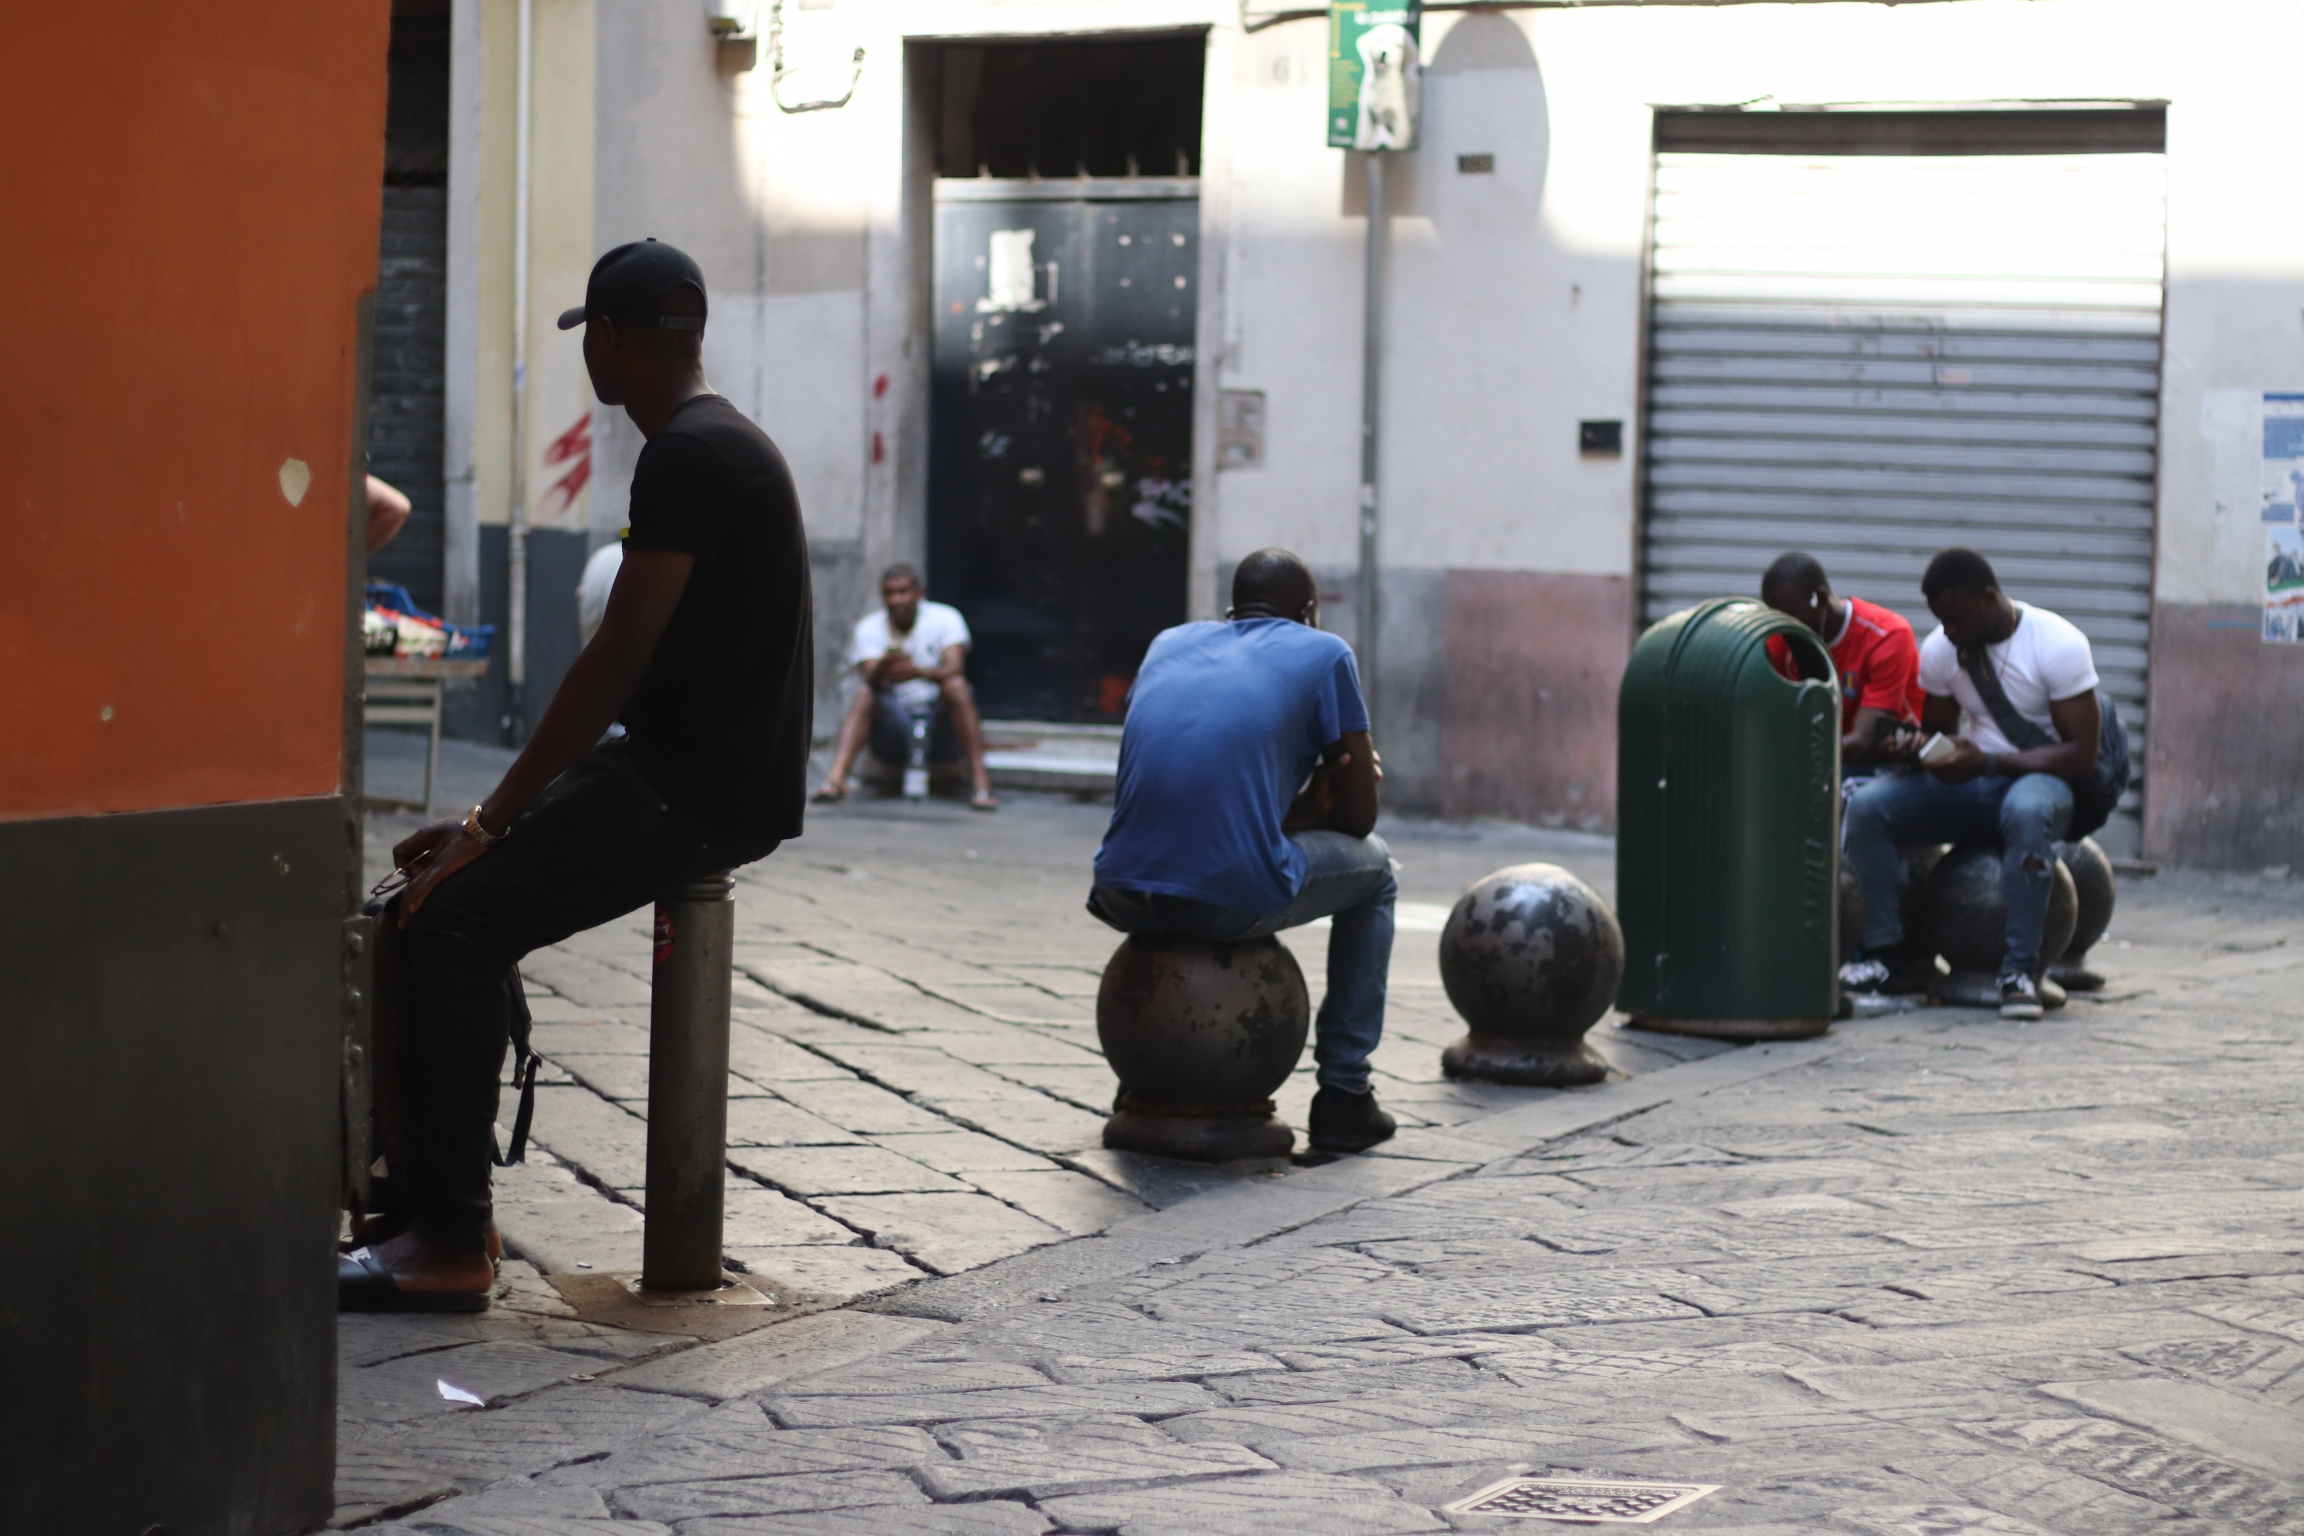 asylum-seekers sit in the street idly